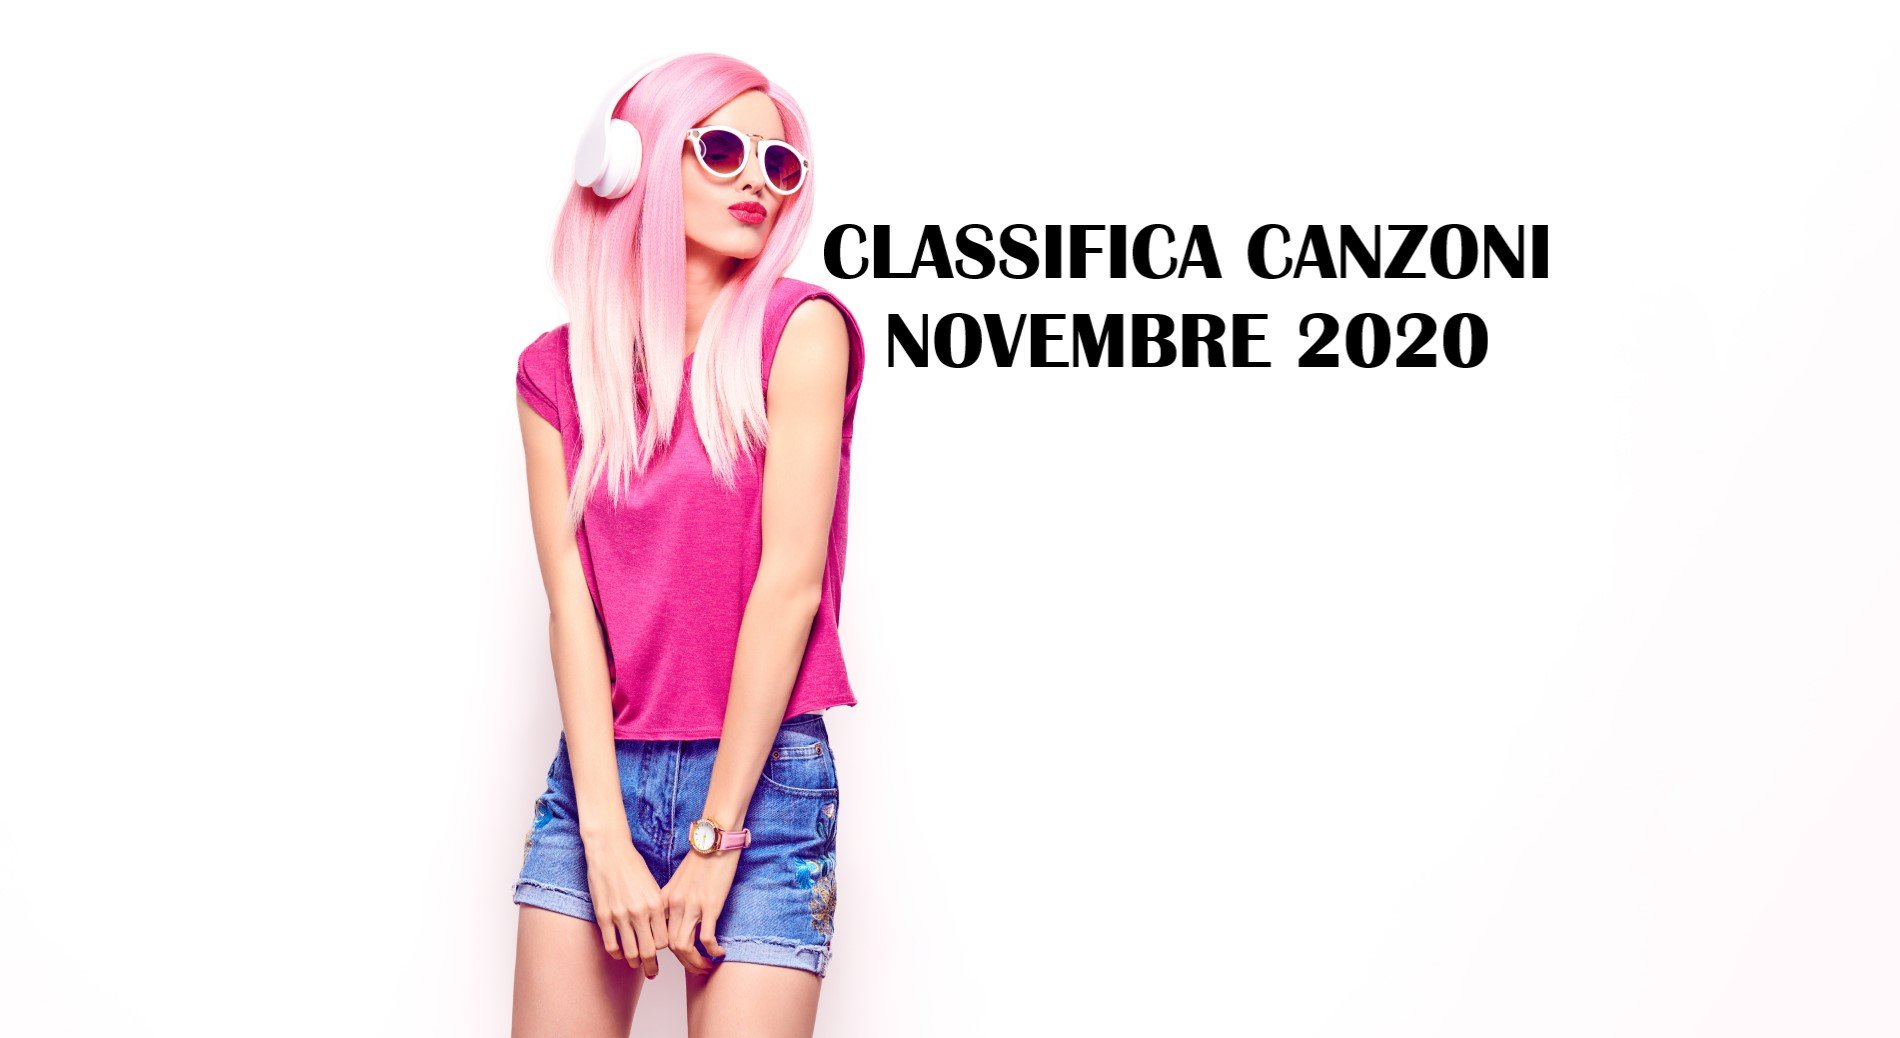 CLASSIFICA CANZONI NOVEMBRE 2020